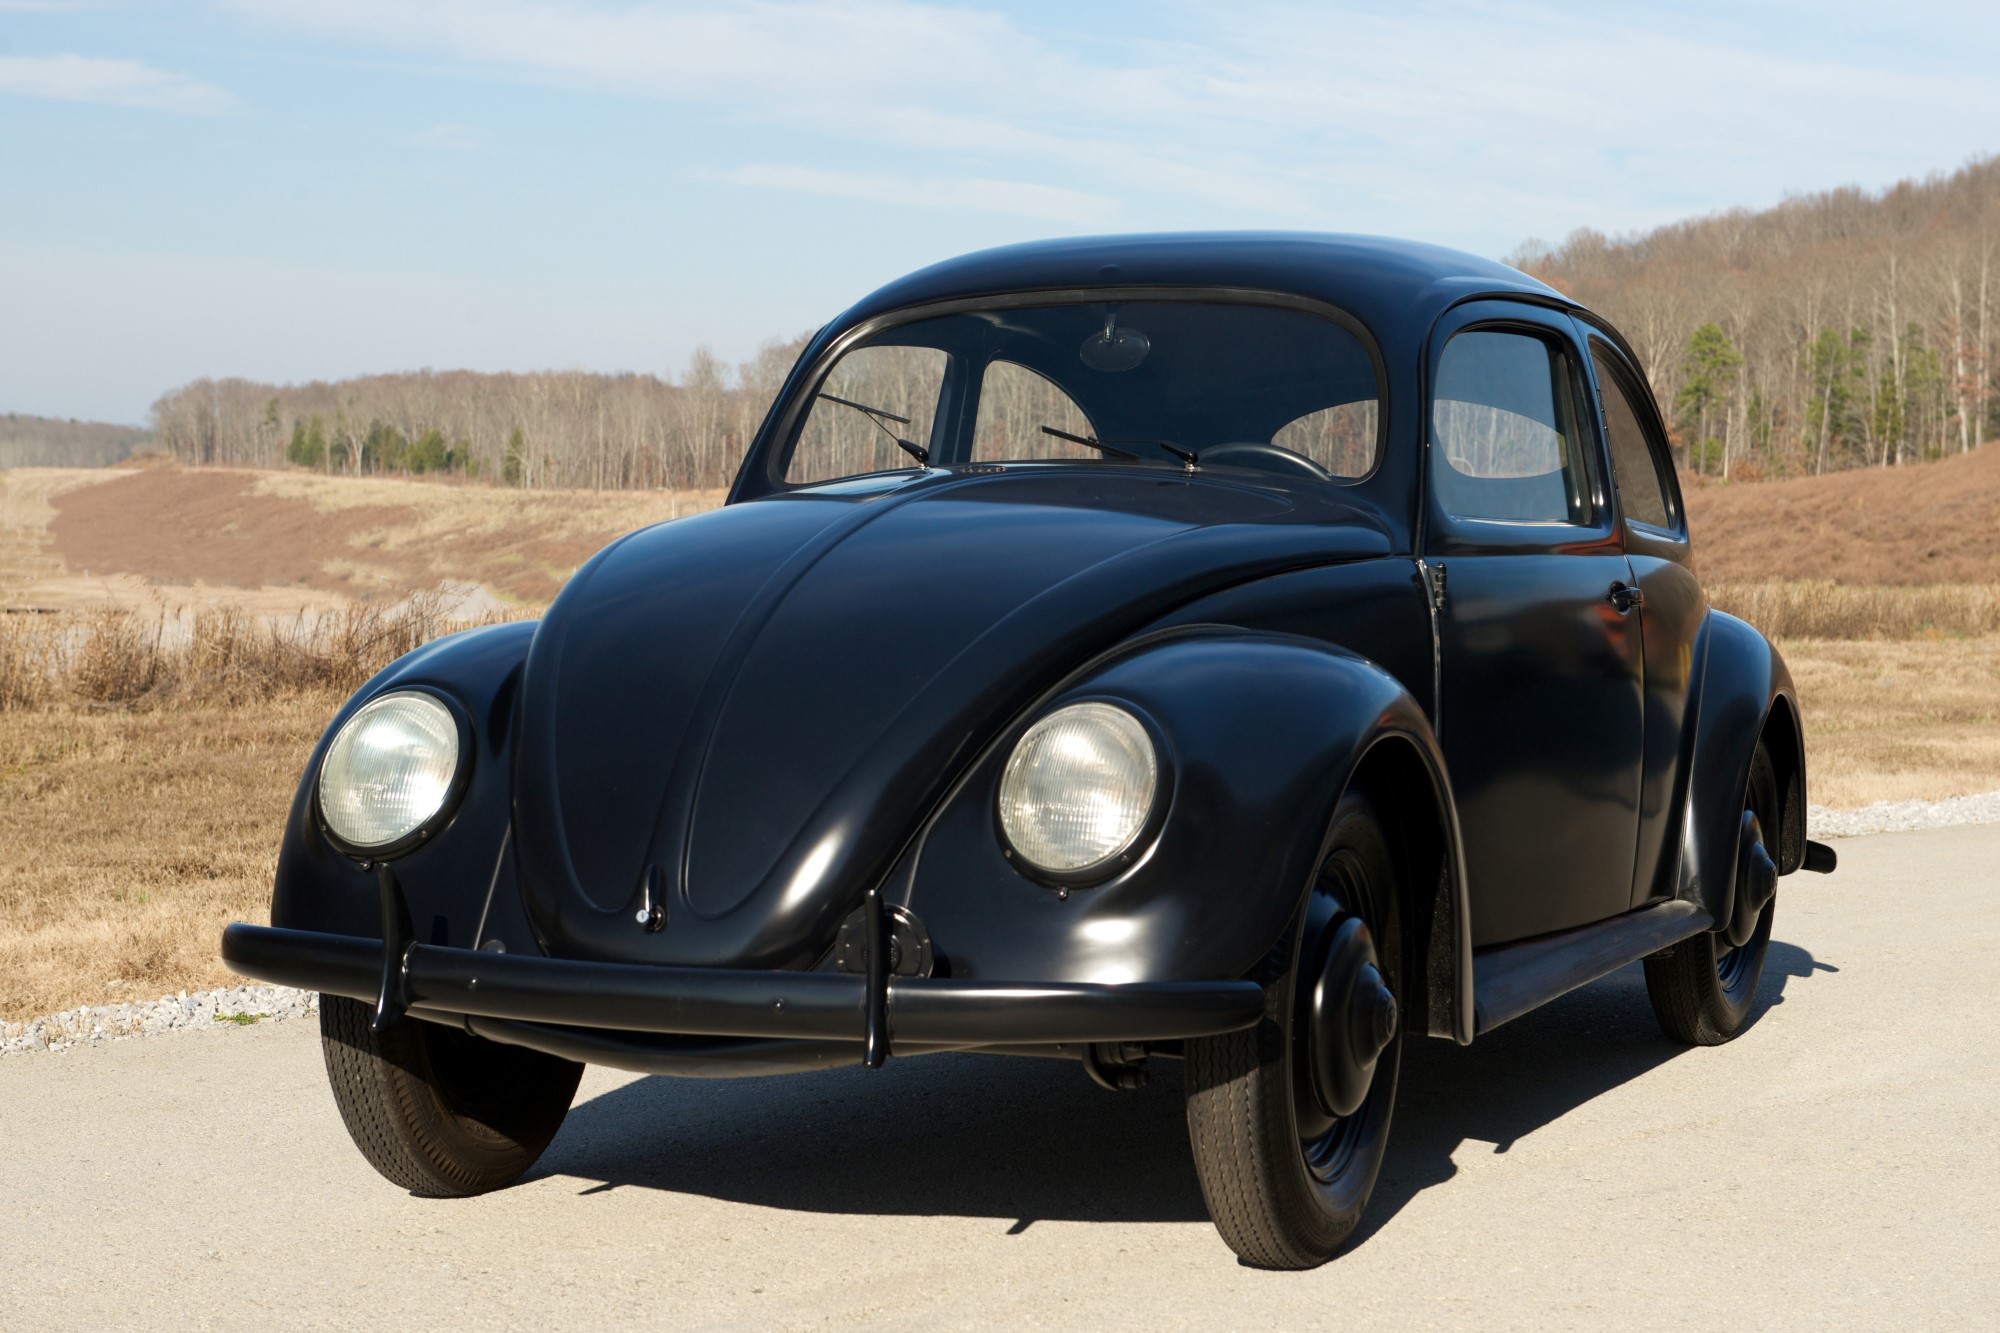 LeMay Museum To Run An Exhibit About Volkswagen